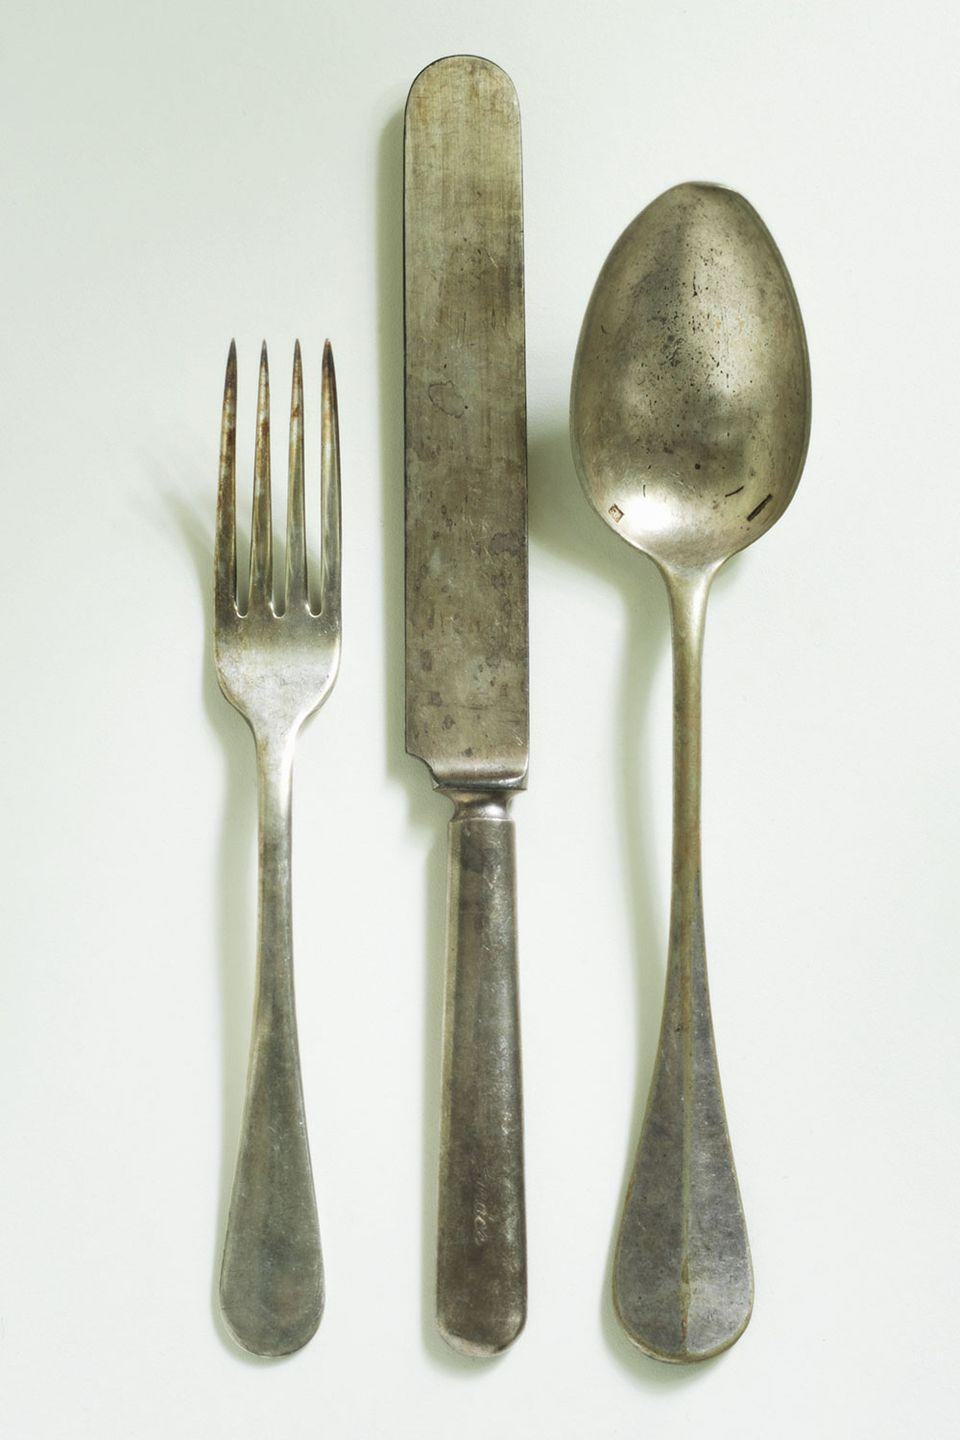 <p>Time to bust out your grandmother's old dinnerware. Sets of sterling silverware can be worth anywhere from hundreds to thousands of dollars. If you have a complete set from a big brand like Tiffany, you could be in for a real payday.</p><p><strong>What it's worth: </strong>Up to $1,100<br></p>